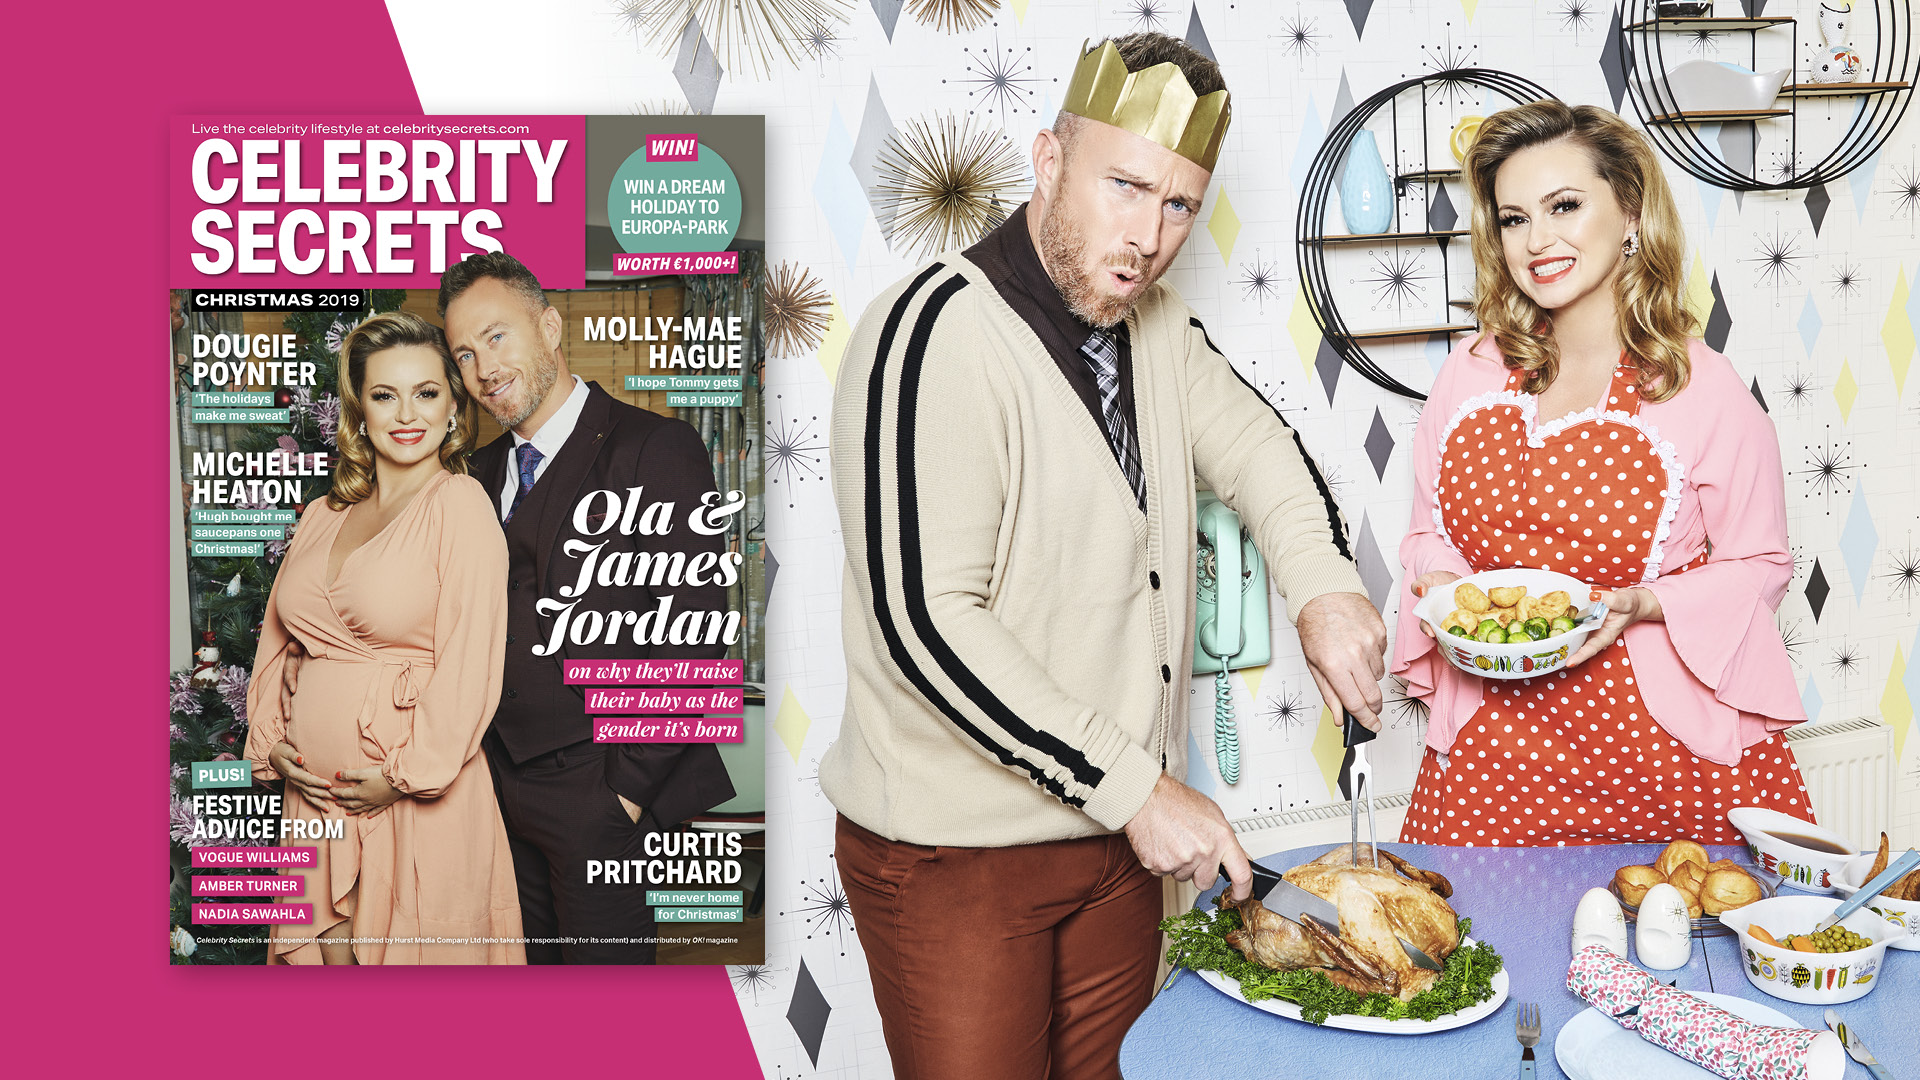 EXCLUSIVE INTERVIEW WITH OLA & JAMES JORDAN INSIDE CELEBRITY SECRETS: THE CHRISTMAS ISSUE OUT NOW!